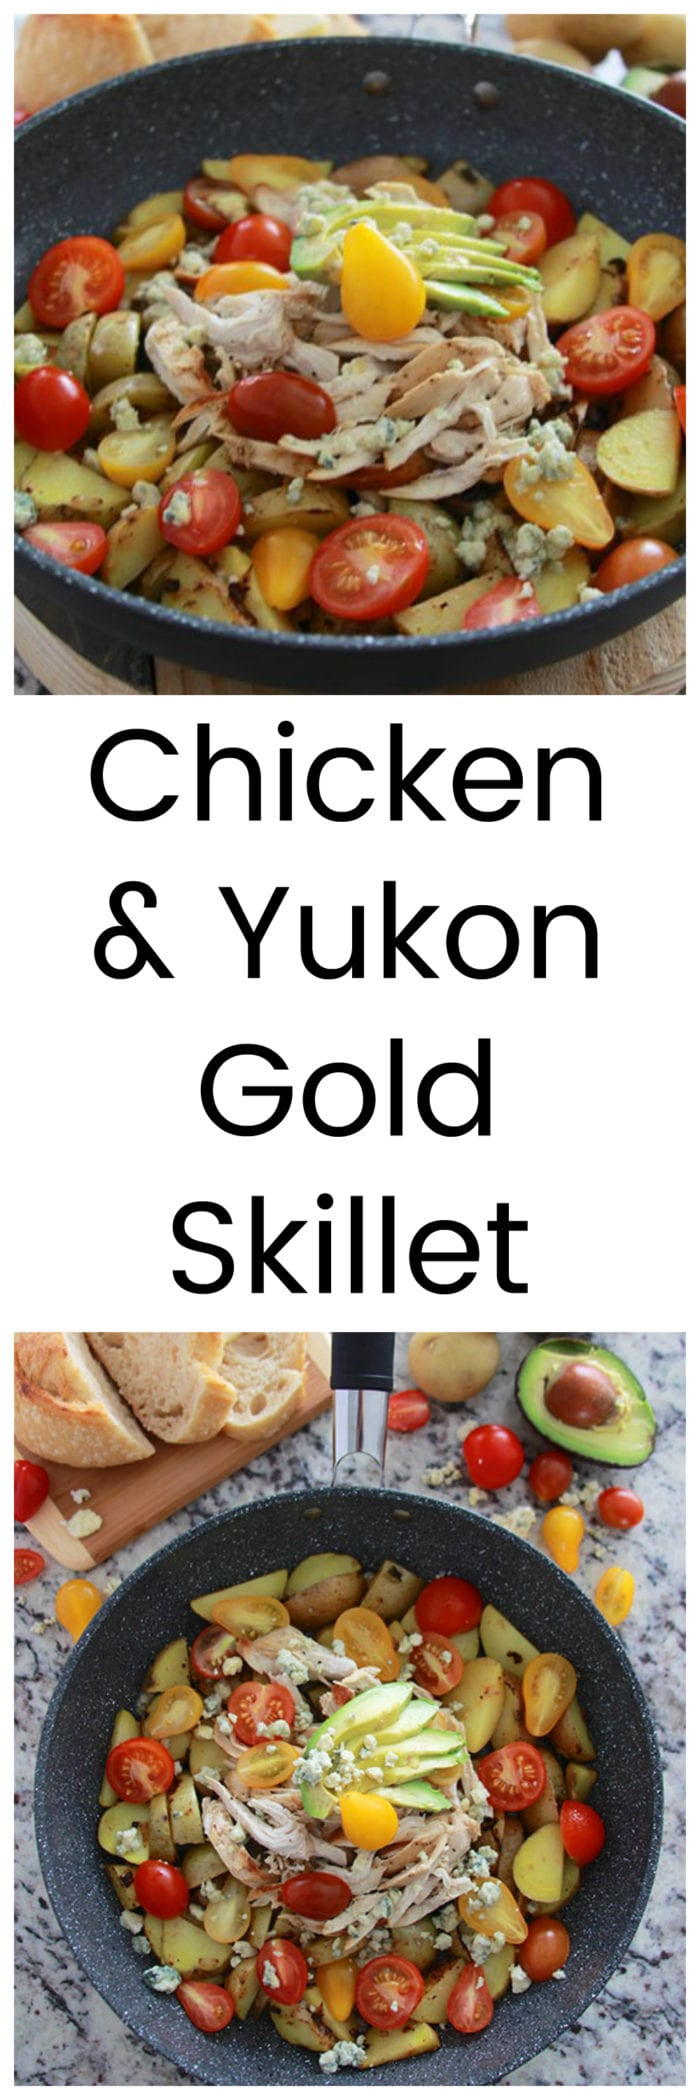 Chicken and Yukon Gold Skillet deliciousness in just one pan! www.cookingwithruthie.com